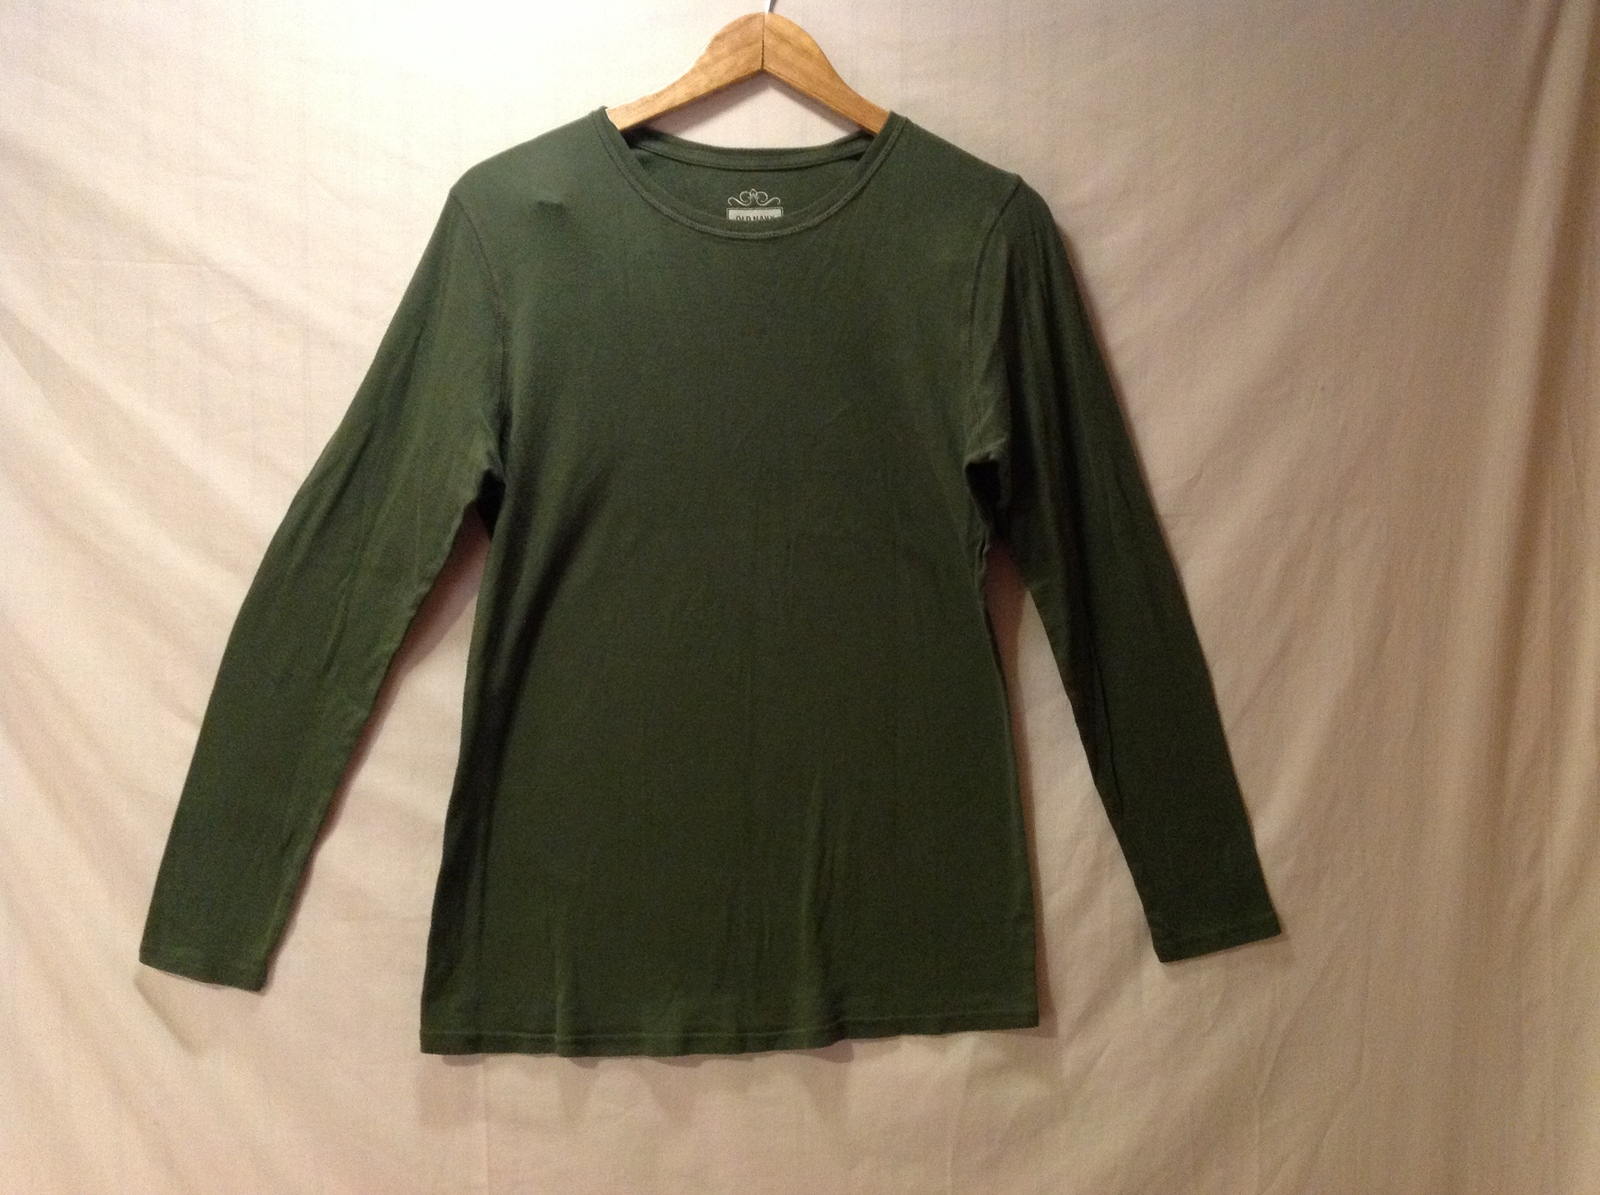 Old Navy Womans Olive Green Maternity Shirt, Size Large